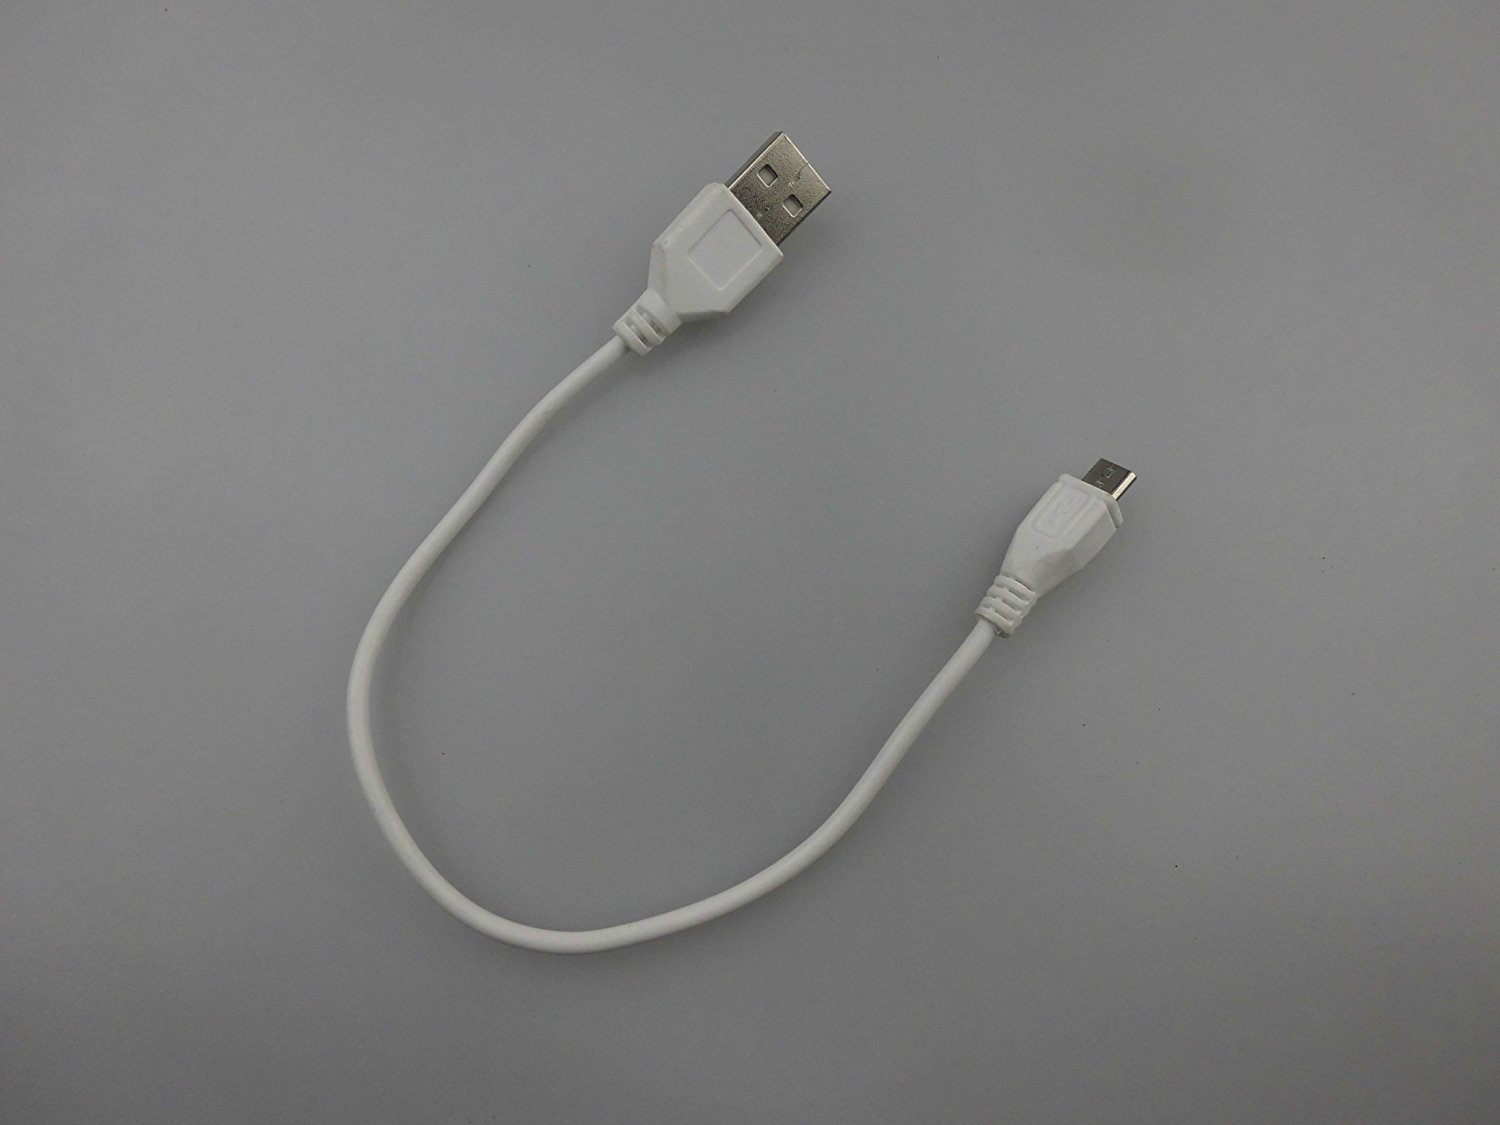 Buy White Replacement Charging Power Supply Cable Cord Line For Bose Qc20 Soundlink Beats Powerbeats 2 Wireless Studio 2 0 Wireless Headphones Earphones In Cheap Price On Alibaba Com